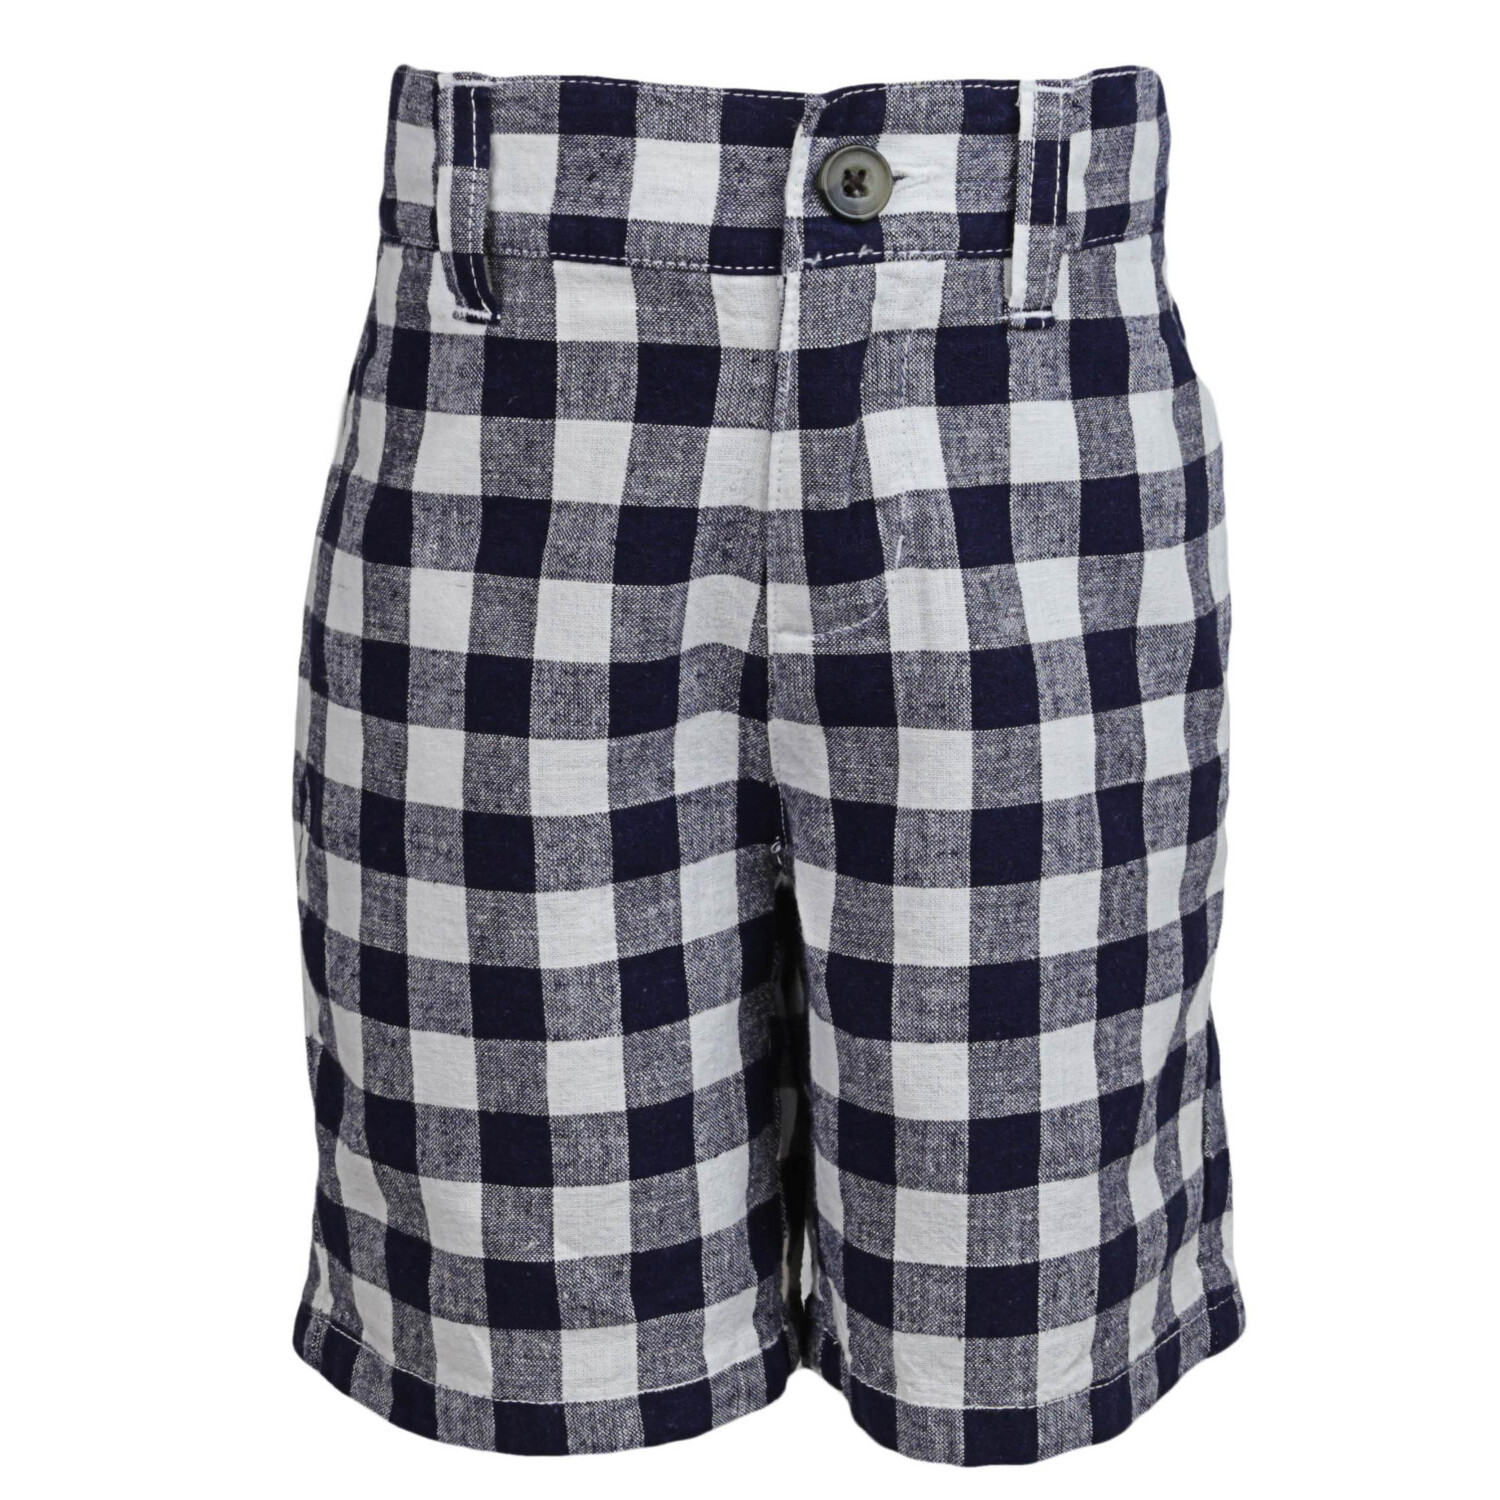 Janie And Jack Navy / White Gingham Linen Short - 4